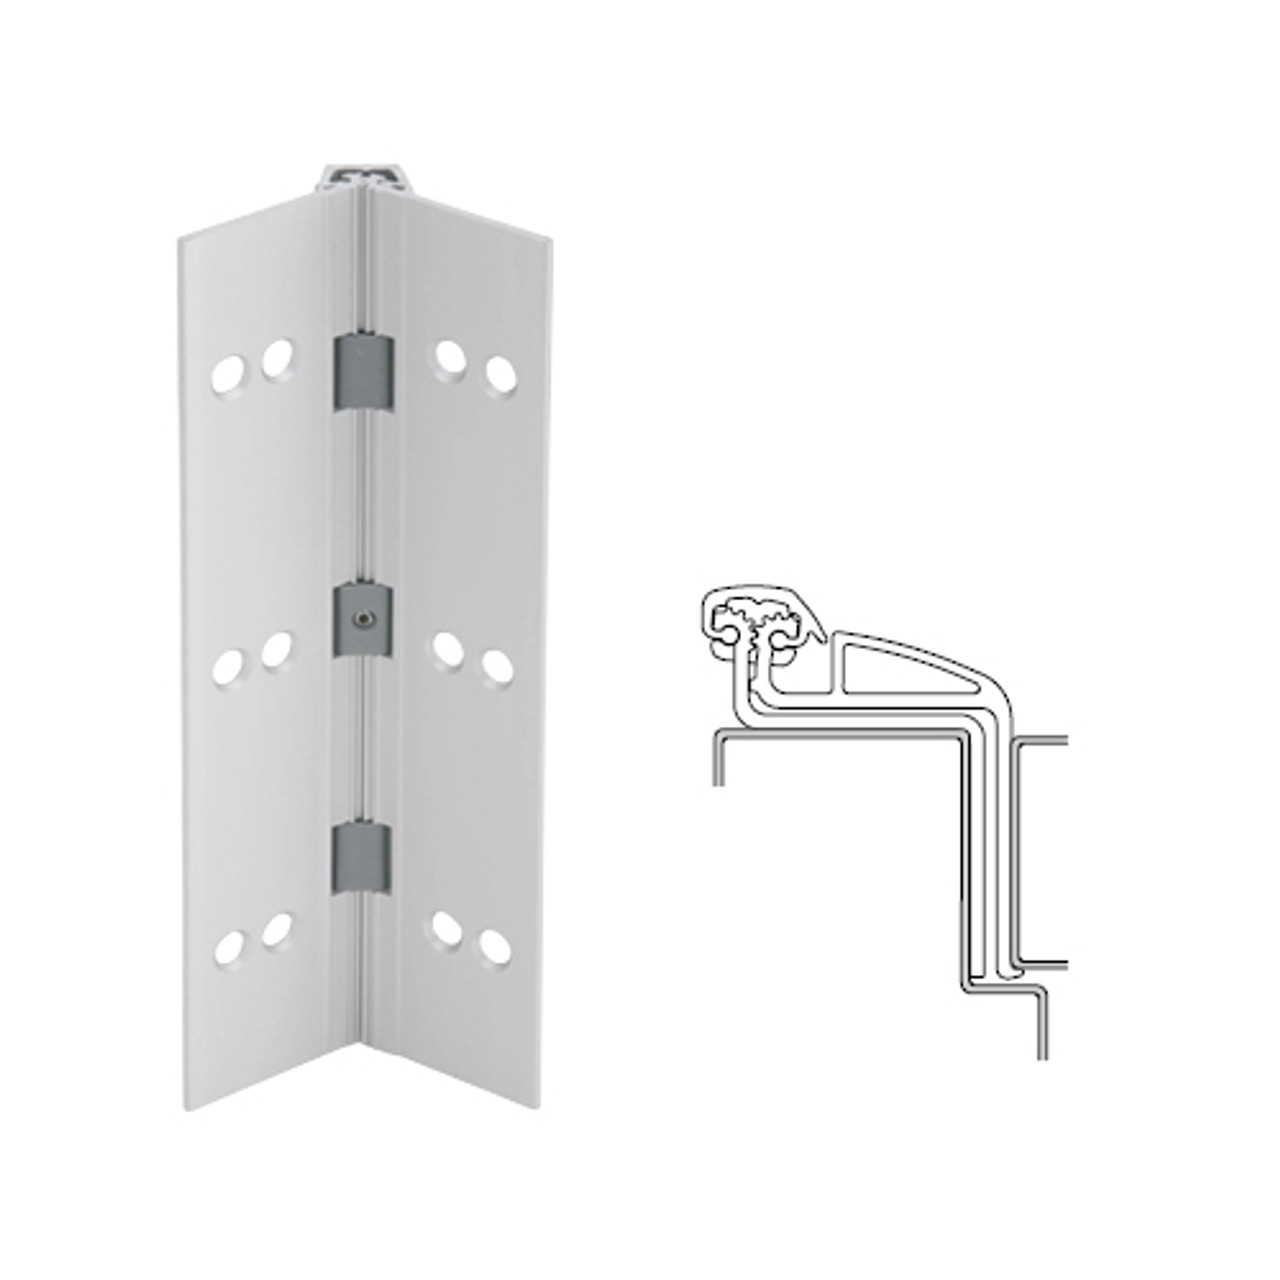 041XY-US28-120-WD IVES Full Mortise Continuous Geared Hinges with Wood Screws in Satin Aluminum